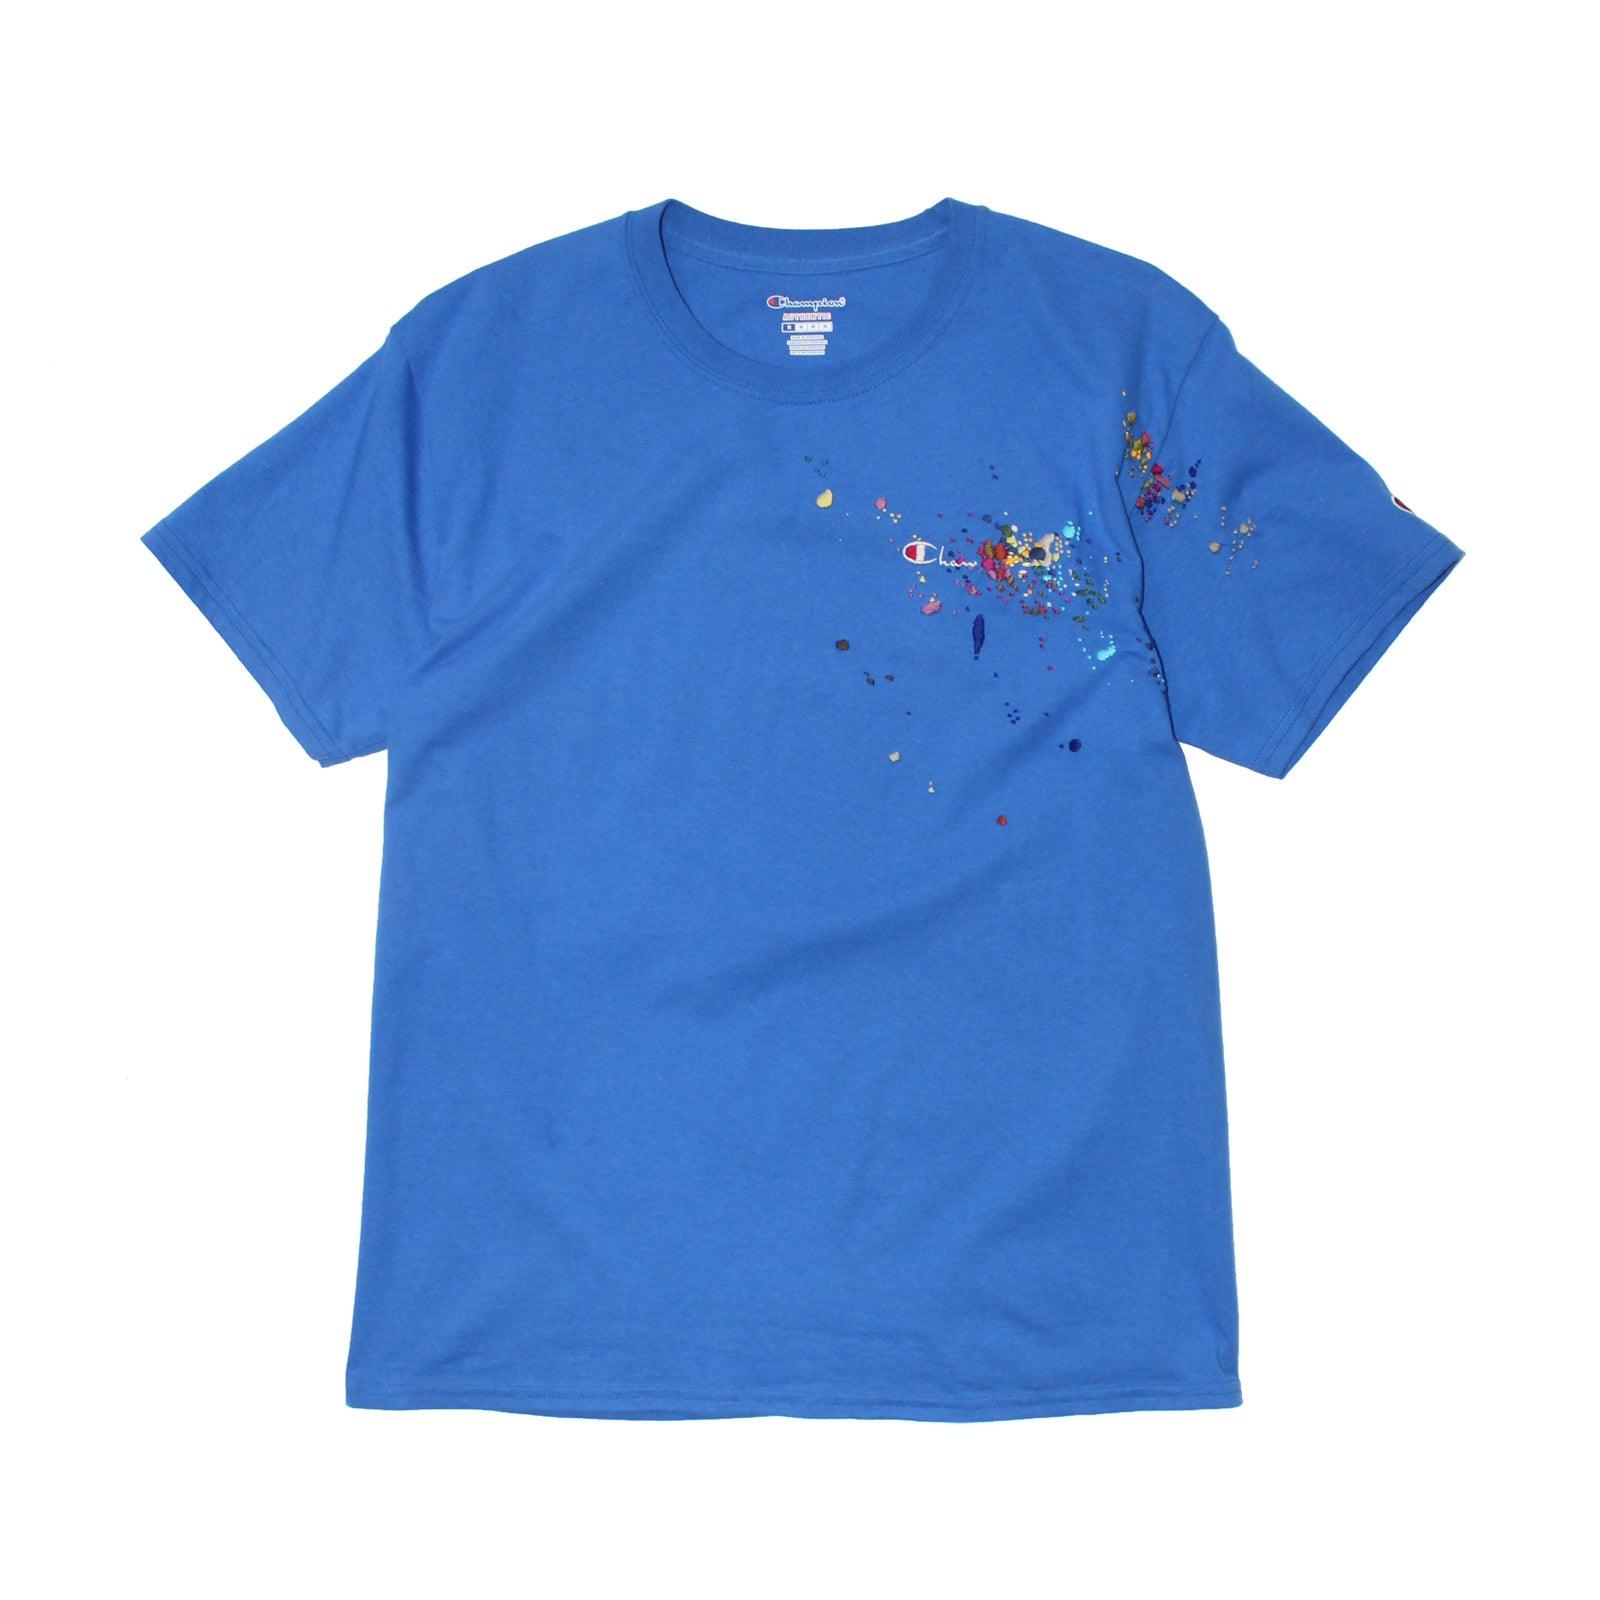 "BANDULU ""BLUE BOY"" VINTAGE CHAMPION TEE"